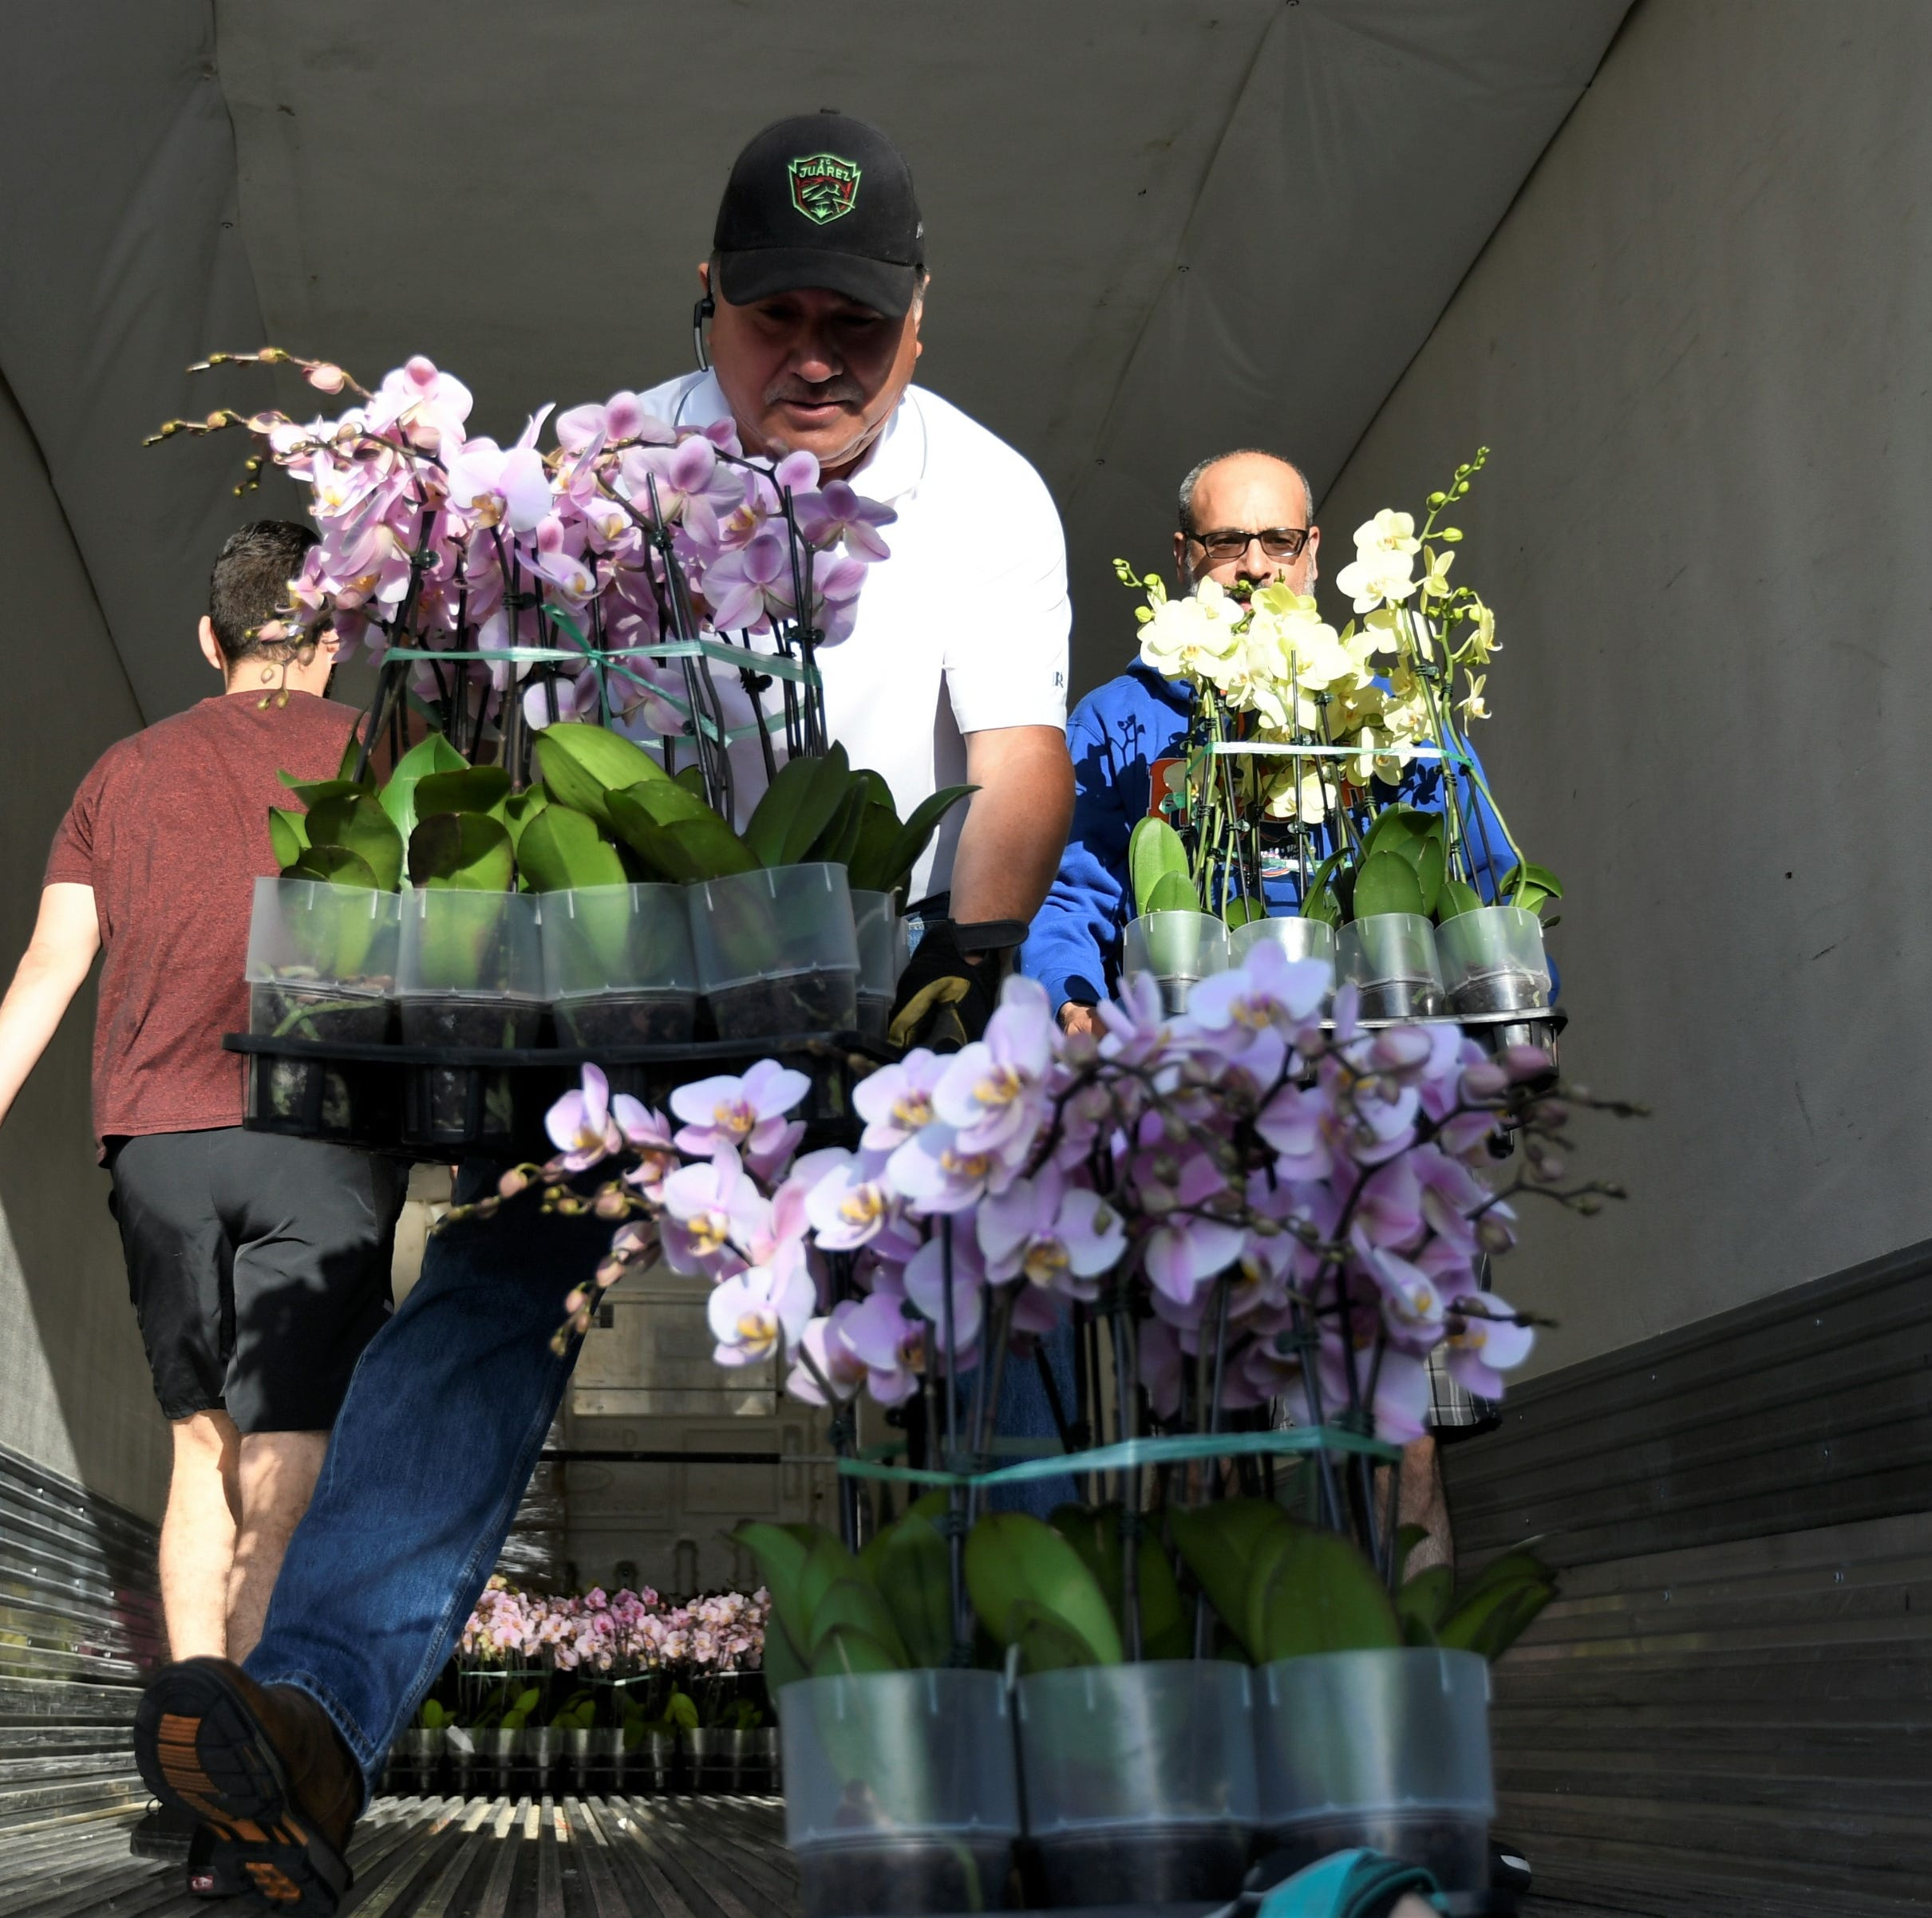 Hundreds of colorful orchids for sale at Arts Visalia, but you'll need to hurry